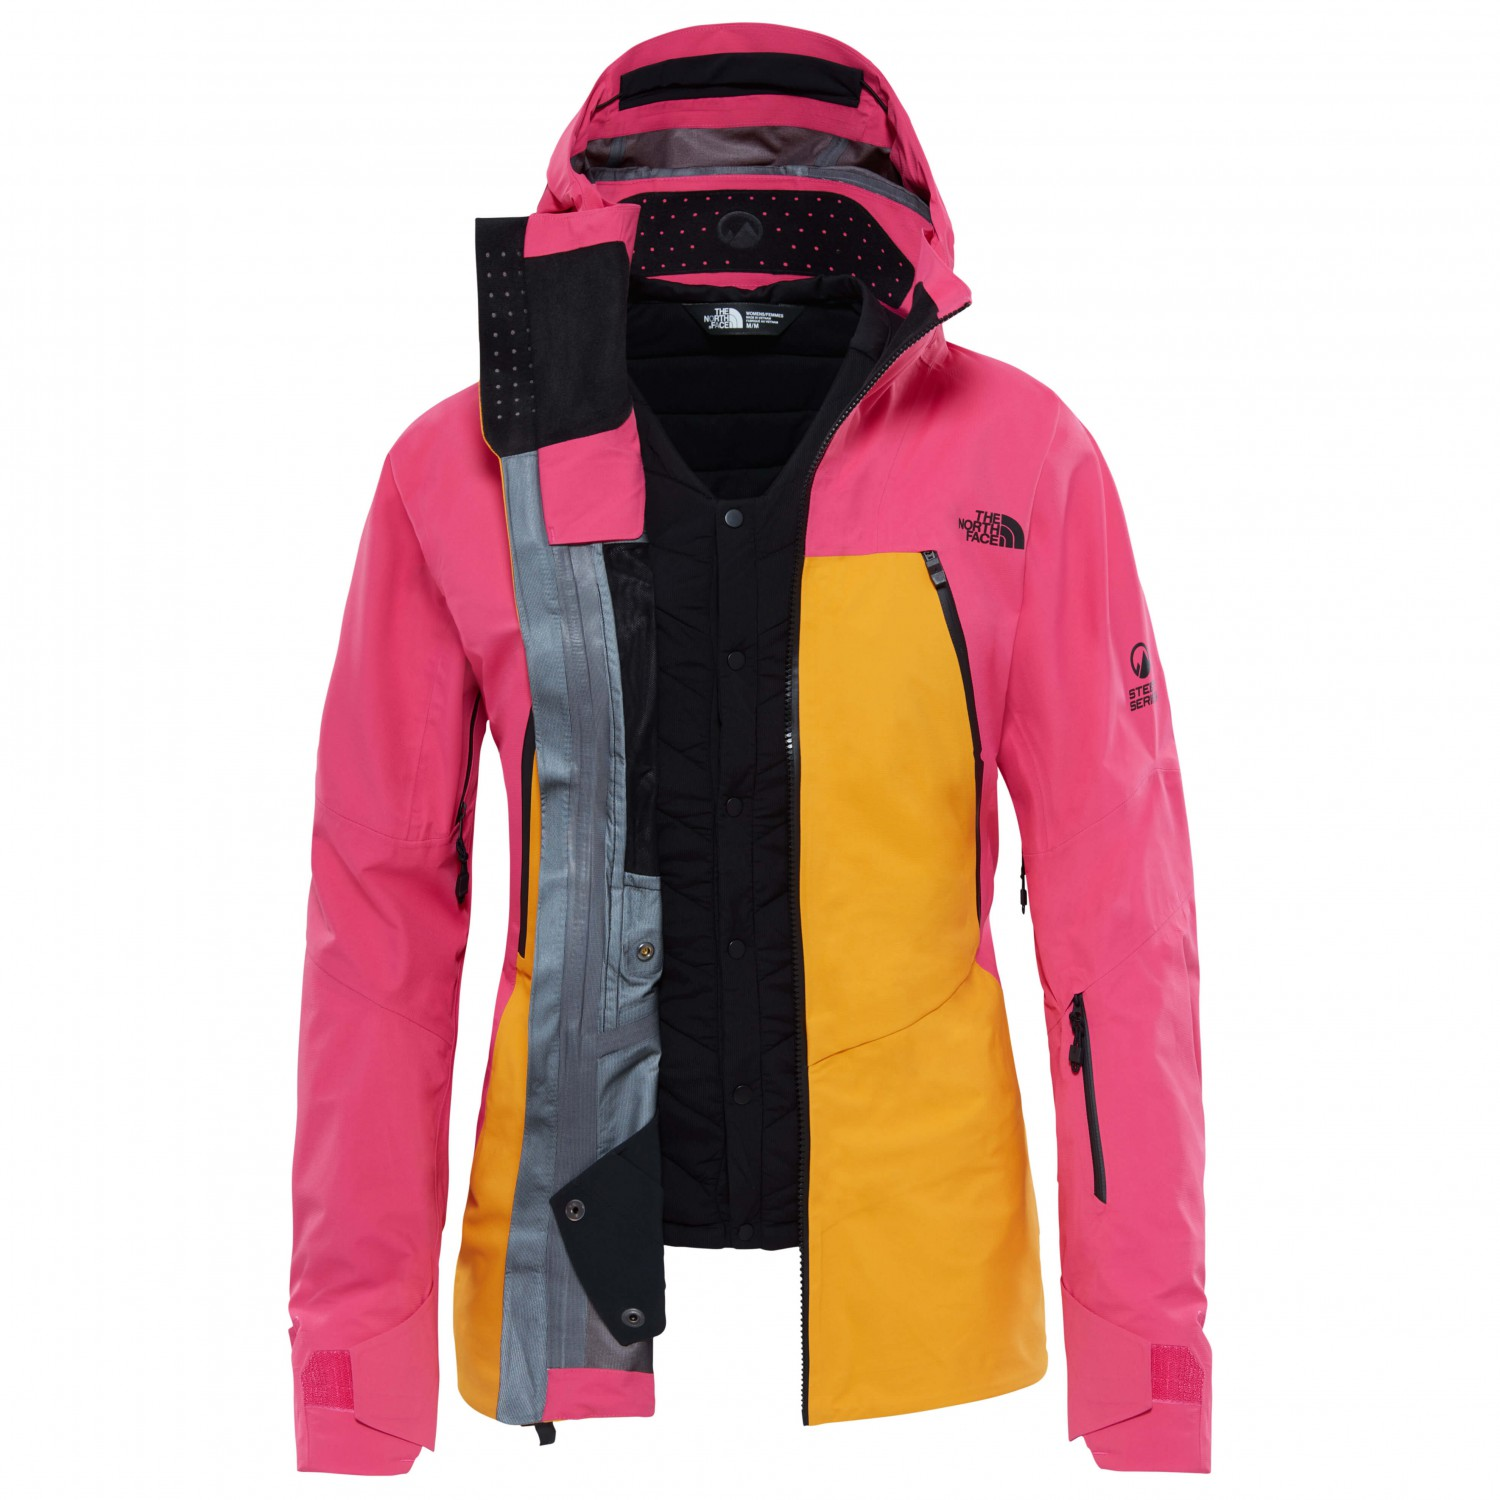 The North Face Purist Triclimate Jacket Skijacke Damen